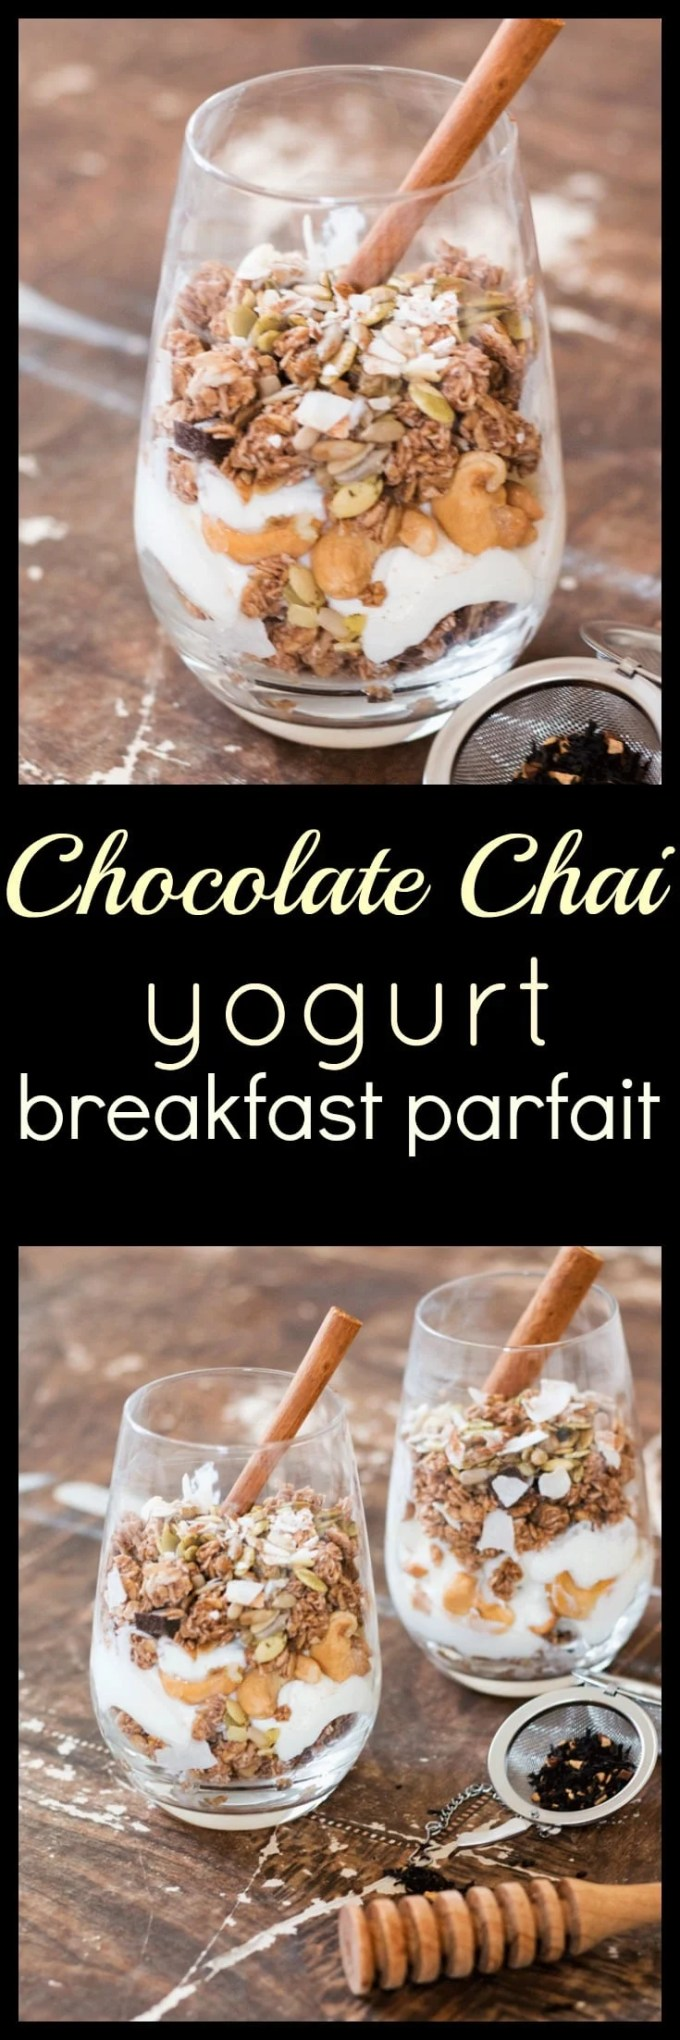 Chai infused yogurt and local raw honey combines with crunchy granola, nuts and seeds to bring you this delightful chocolate chai yogurt breakfast parfait